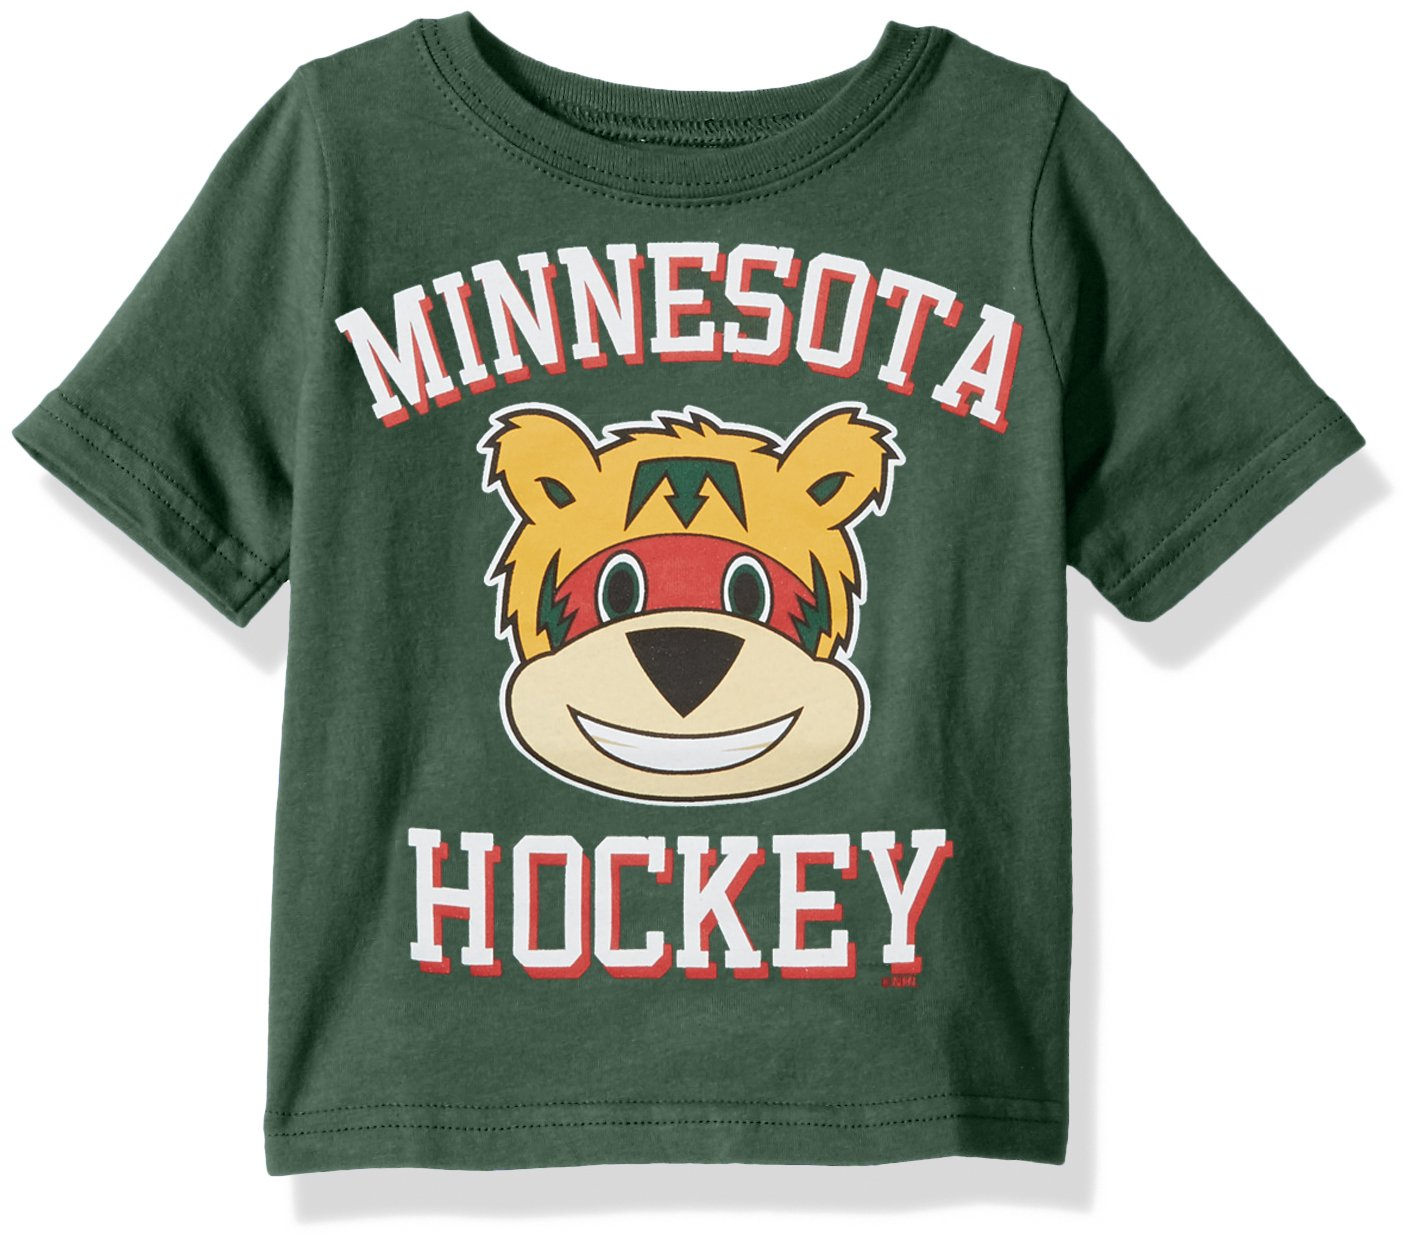 ー品販売  (Minnesota Wild, 24 Months, Hunter) - Months, Wild, NHL Hunter) unisex-child